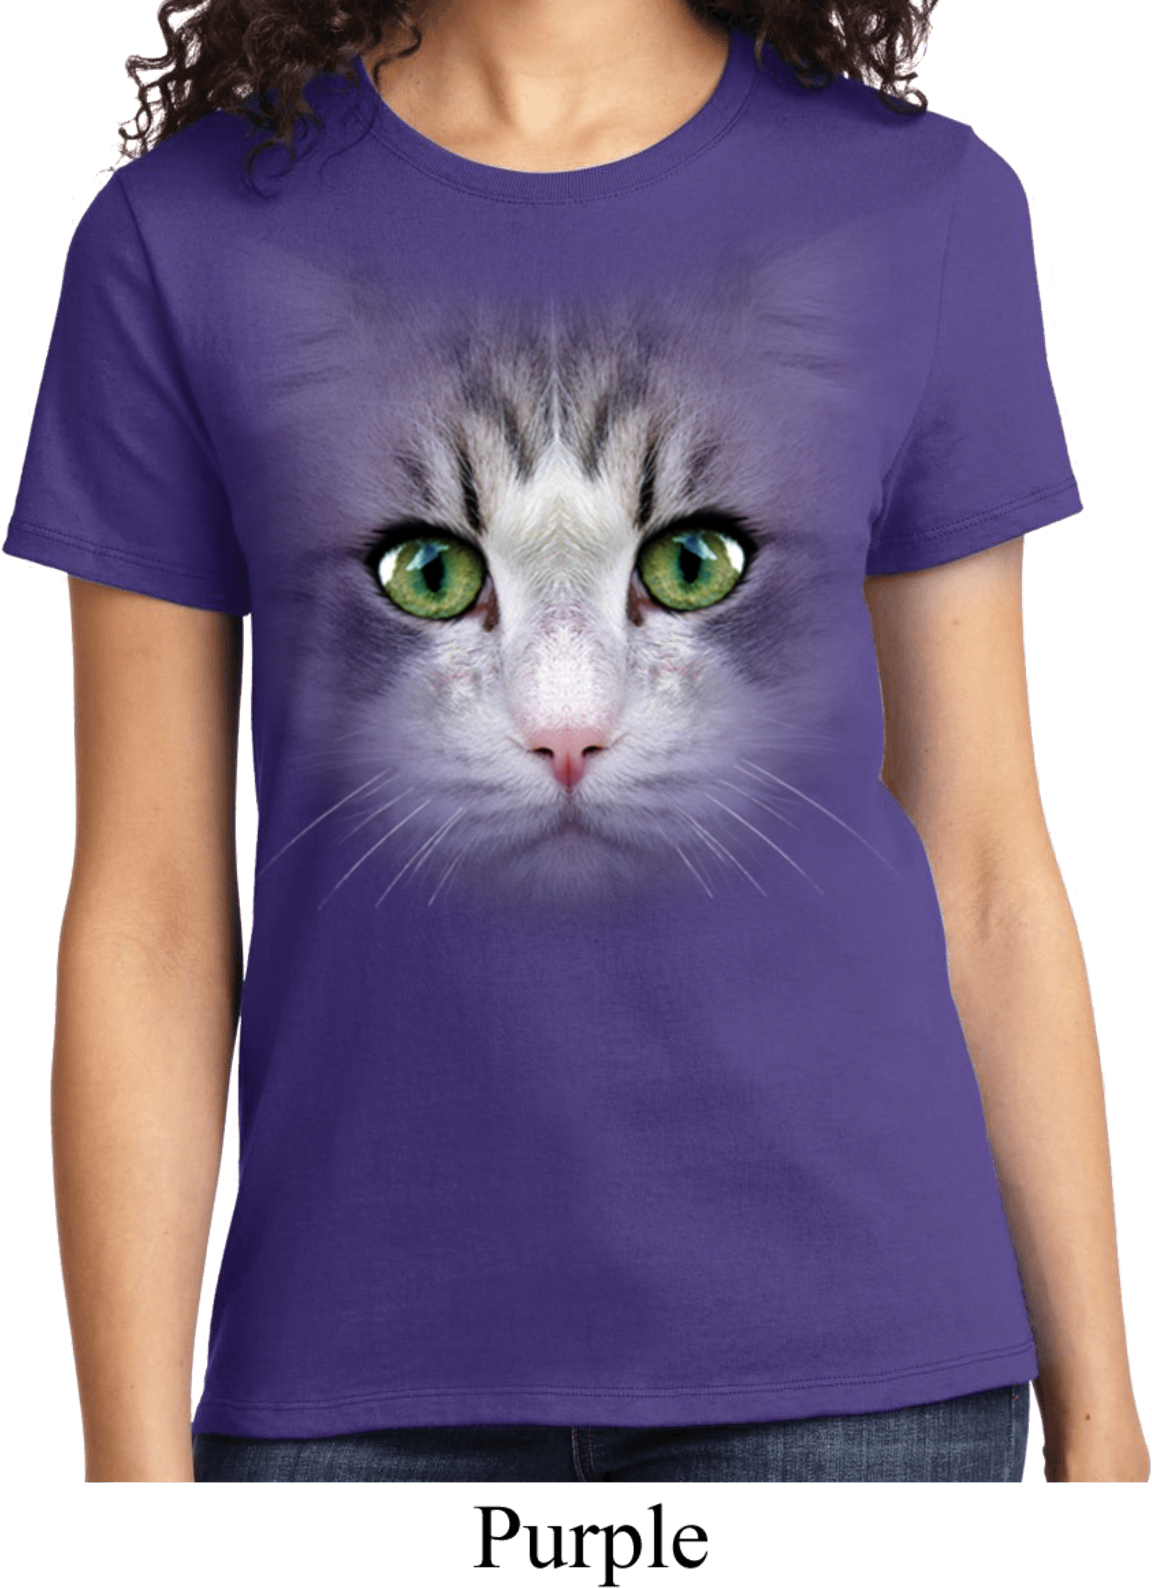 Meow! Buy a new cat shirt from our selection of over 50 graphic designs. Unique kitty and cat shirts from our Design By Humans artists.